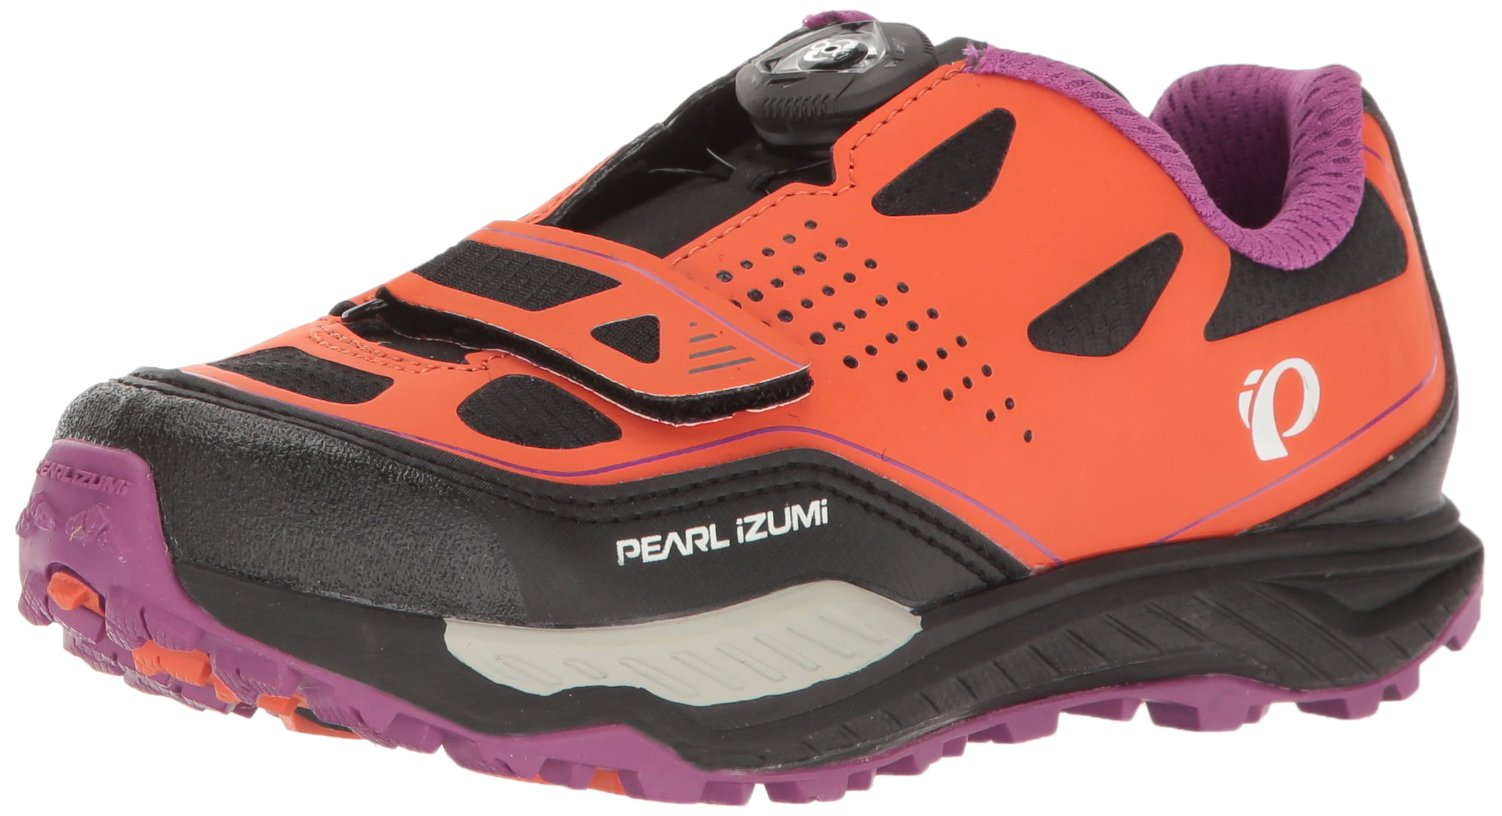 Pearl iZUMi Women's W X-ALP Launch II Cycling Shoe, Clementine/Purple Wine, 38 EU/6.8 B US